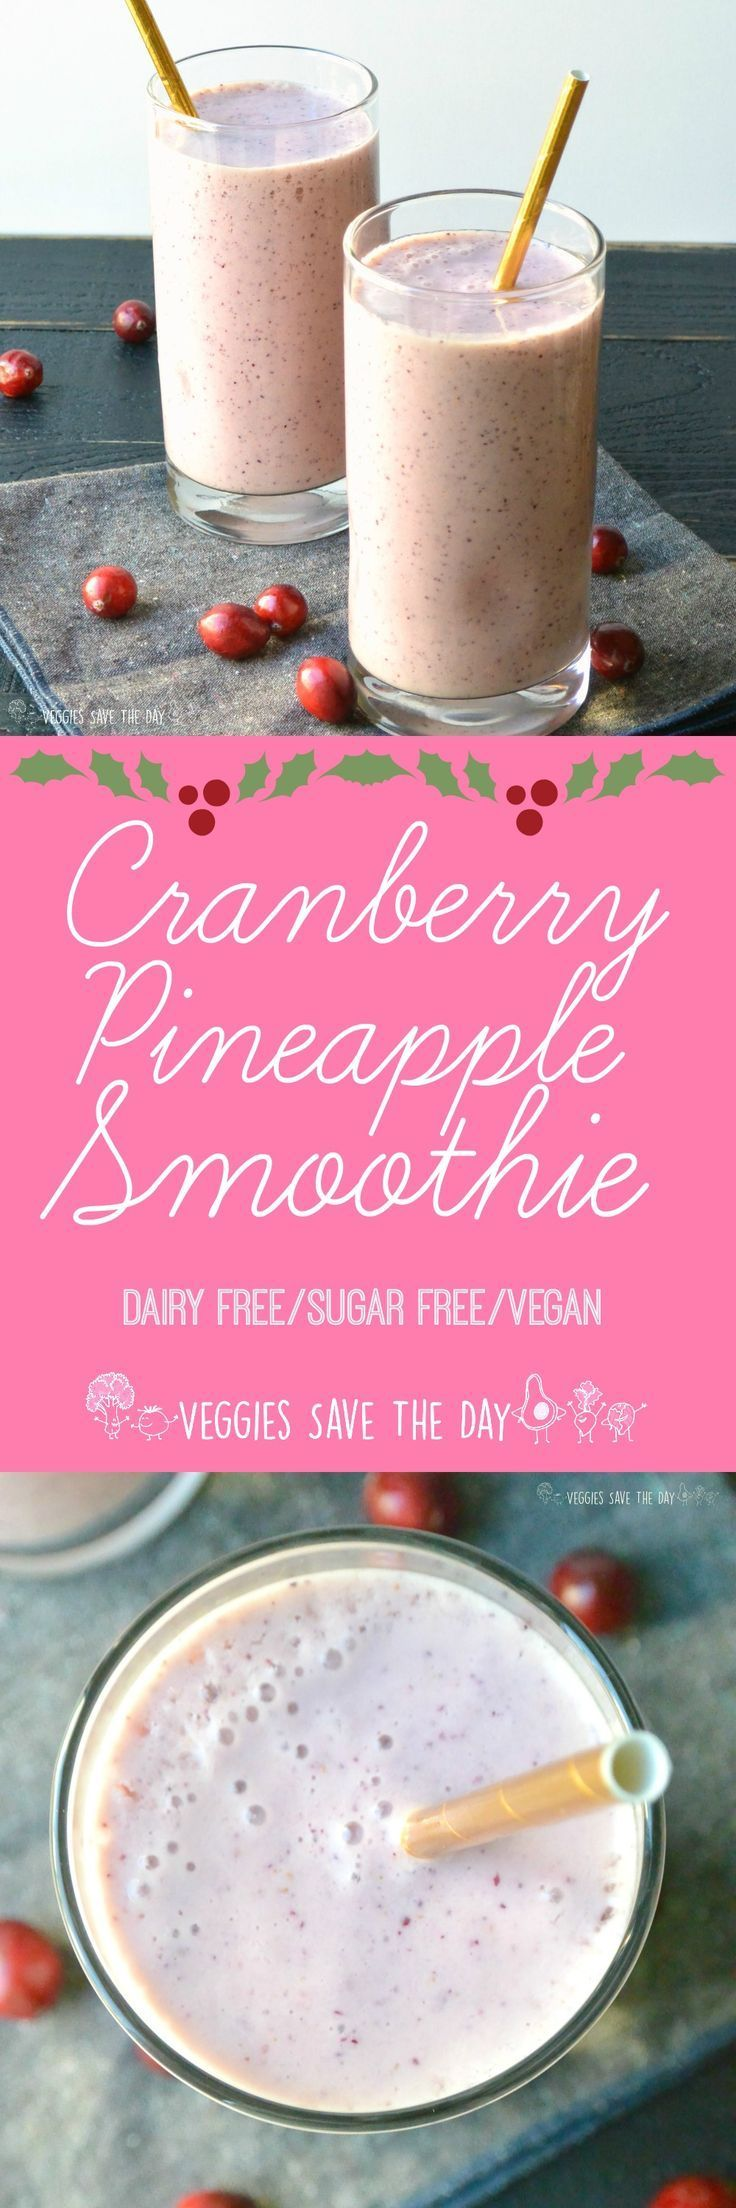 Combine fresh or frozen cranberries with pineapple to make a refreshing and healthy sugar-free smoothie!